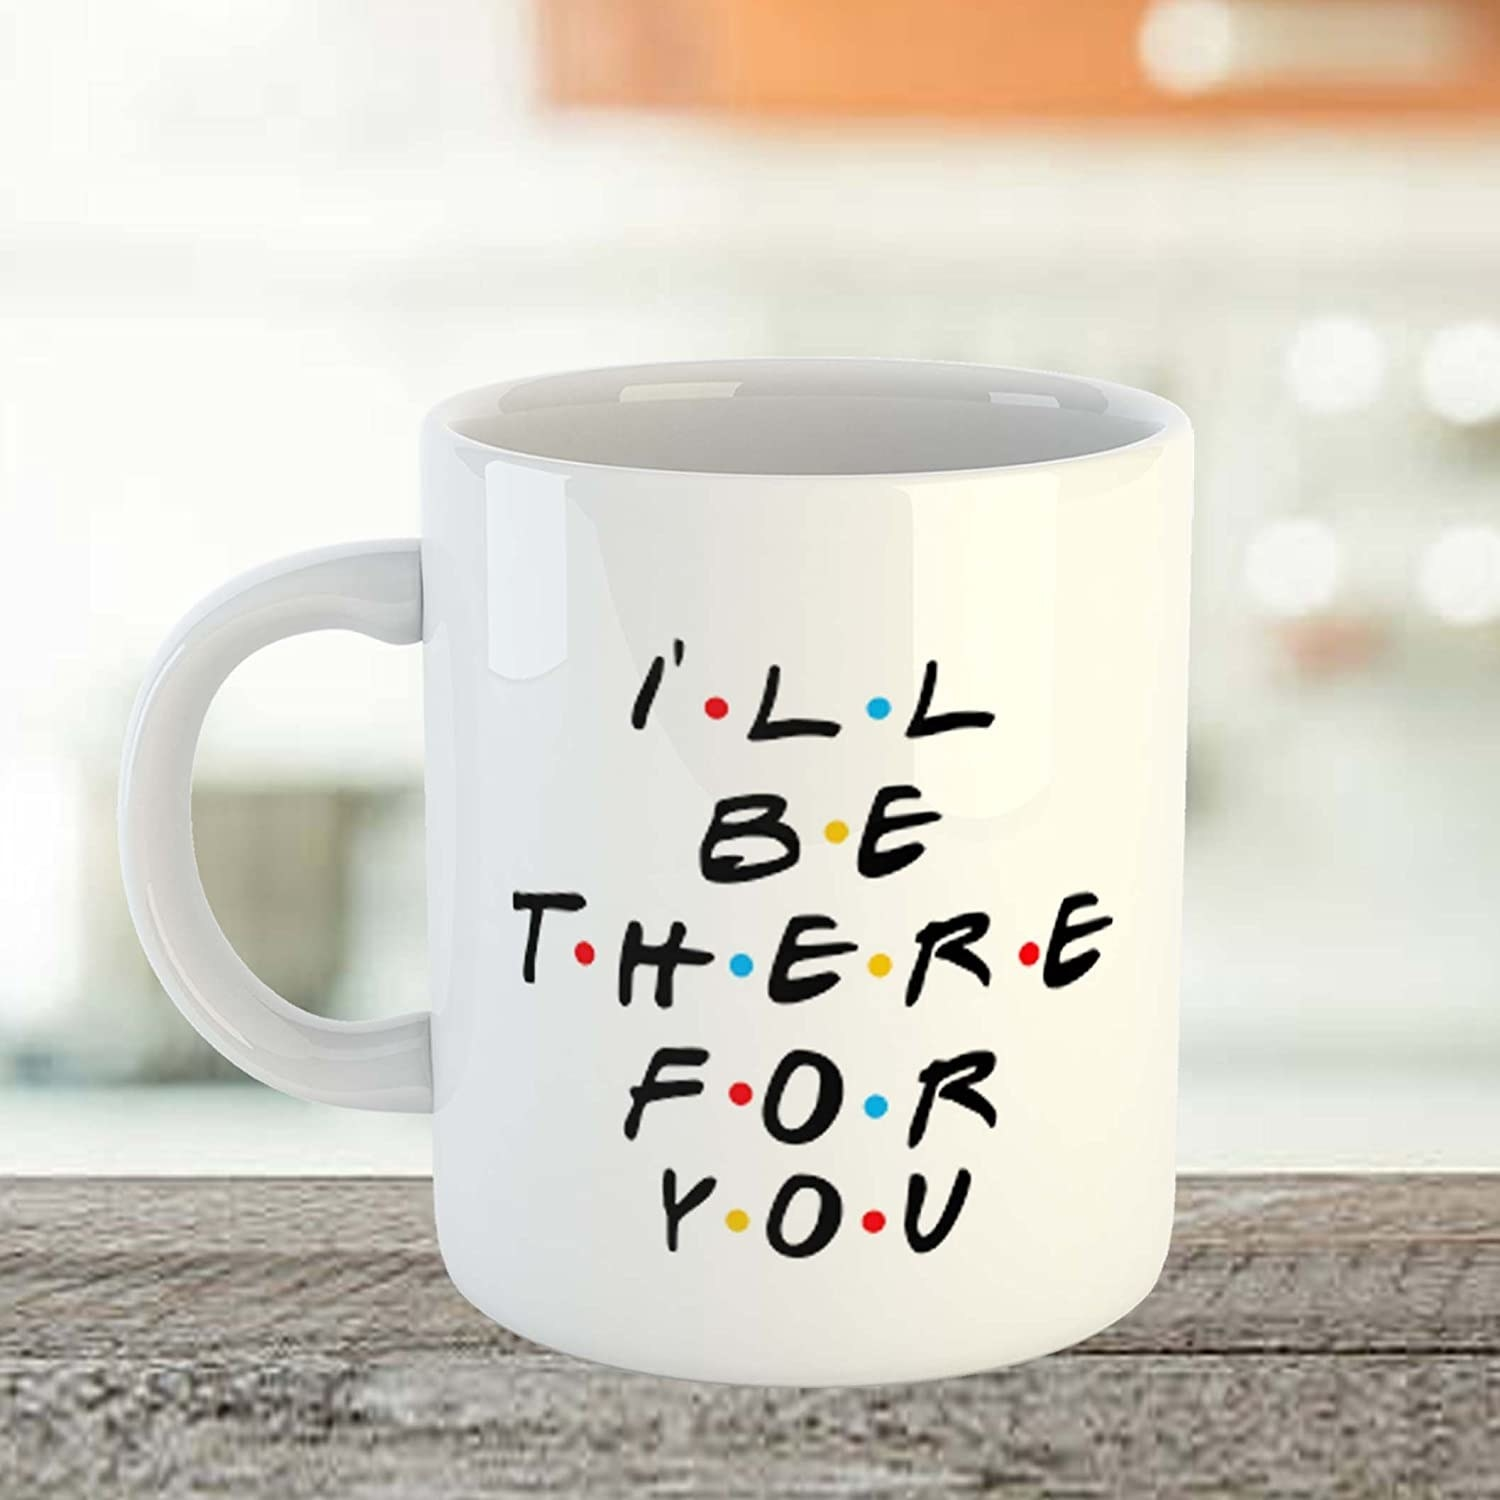 """A mug with """"I'll be there for you"""" written on it"""